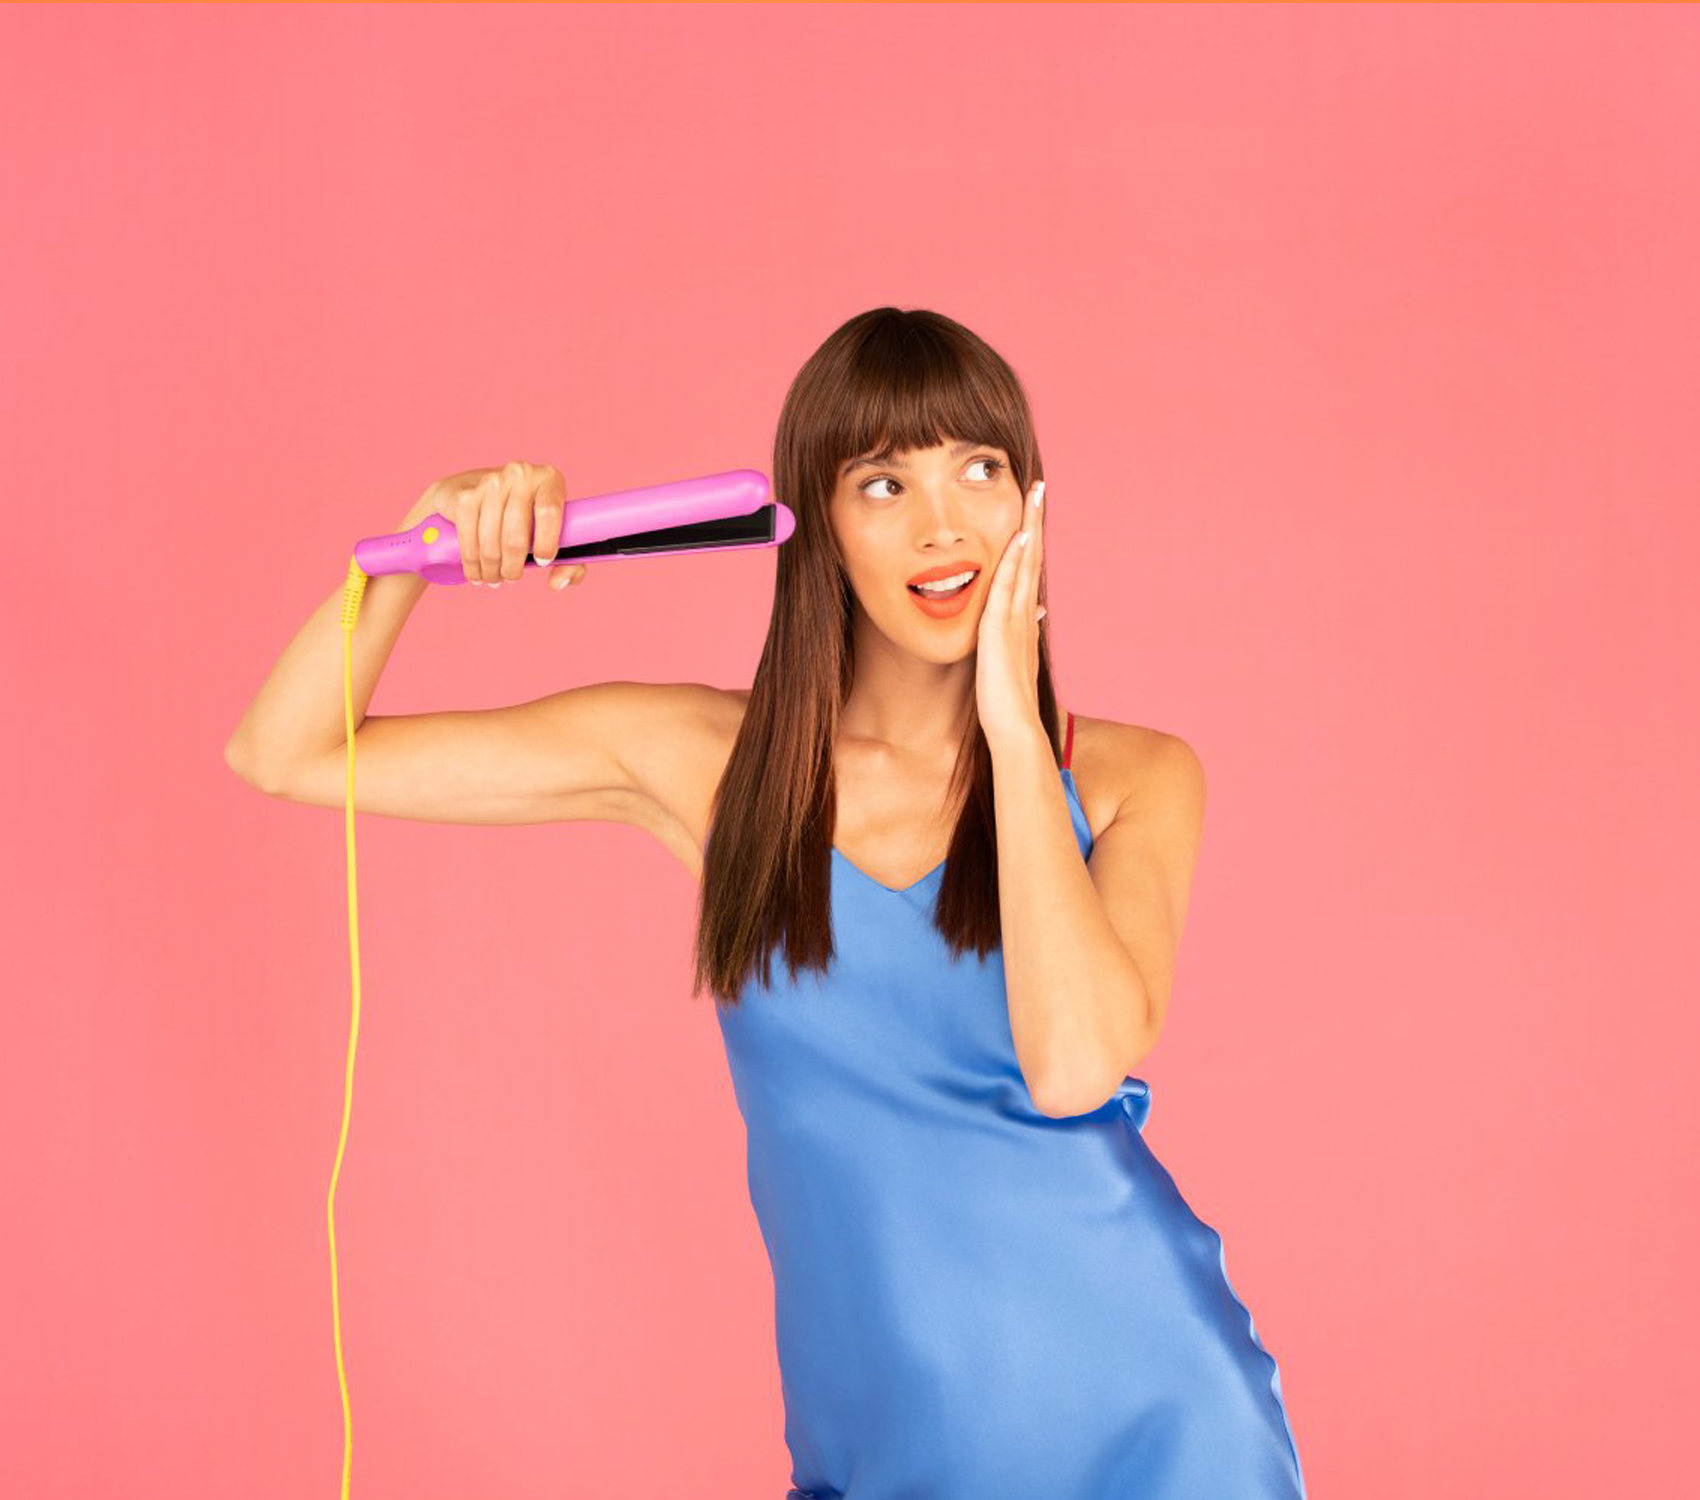 Woman with her hand on her face with the Styling Iron held up at her side